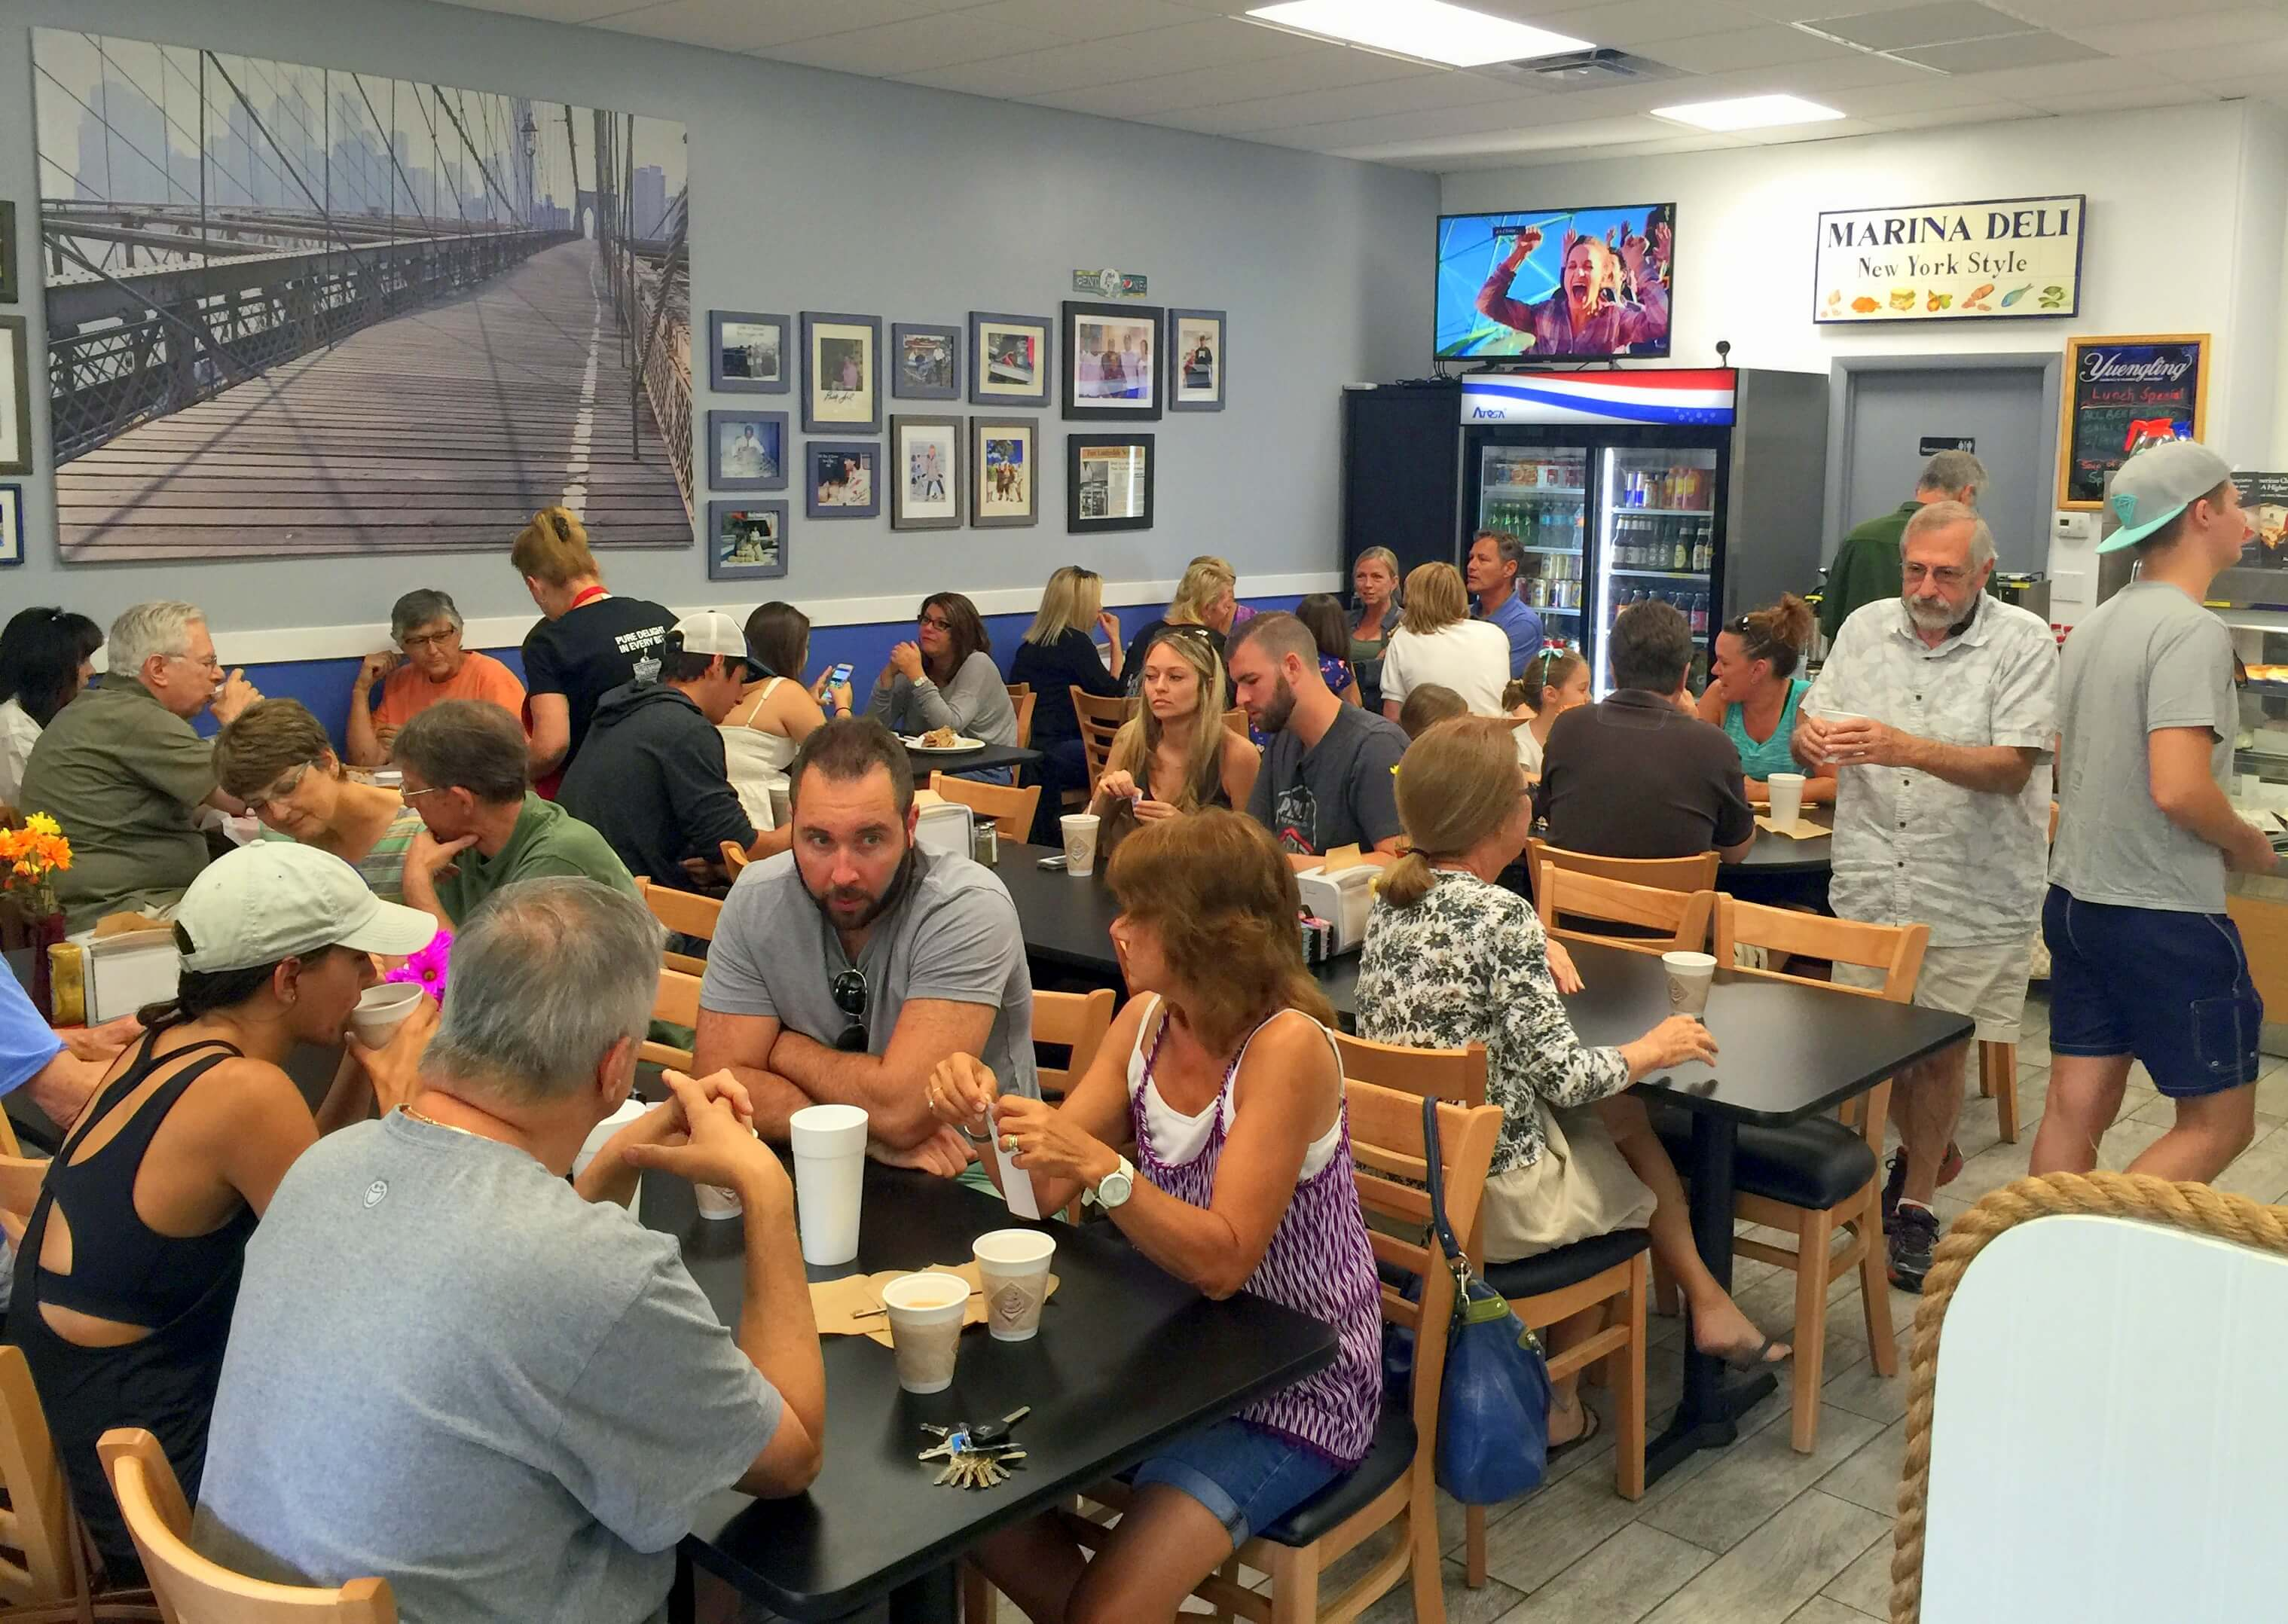 marina deli fort lauderdale filled with customers reduced